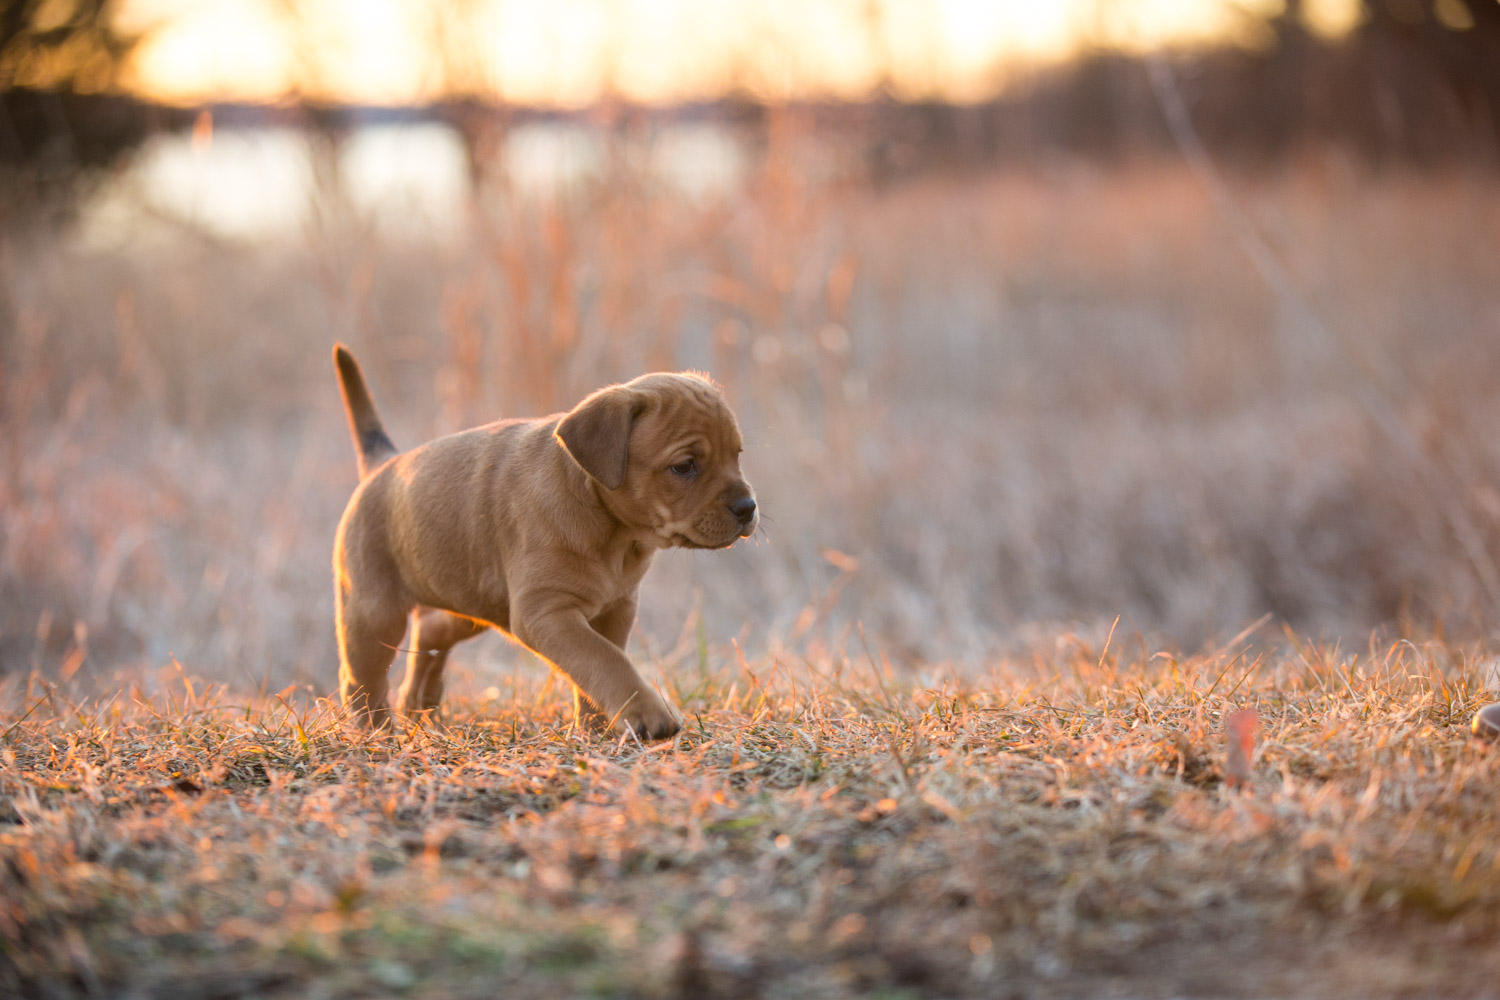 Puppies-blog-22.jpg